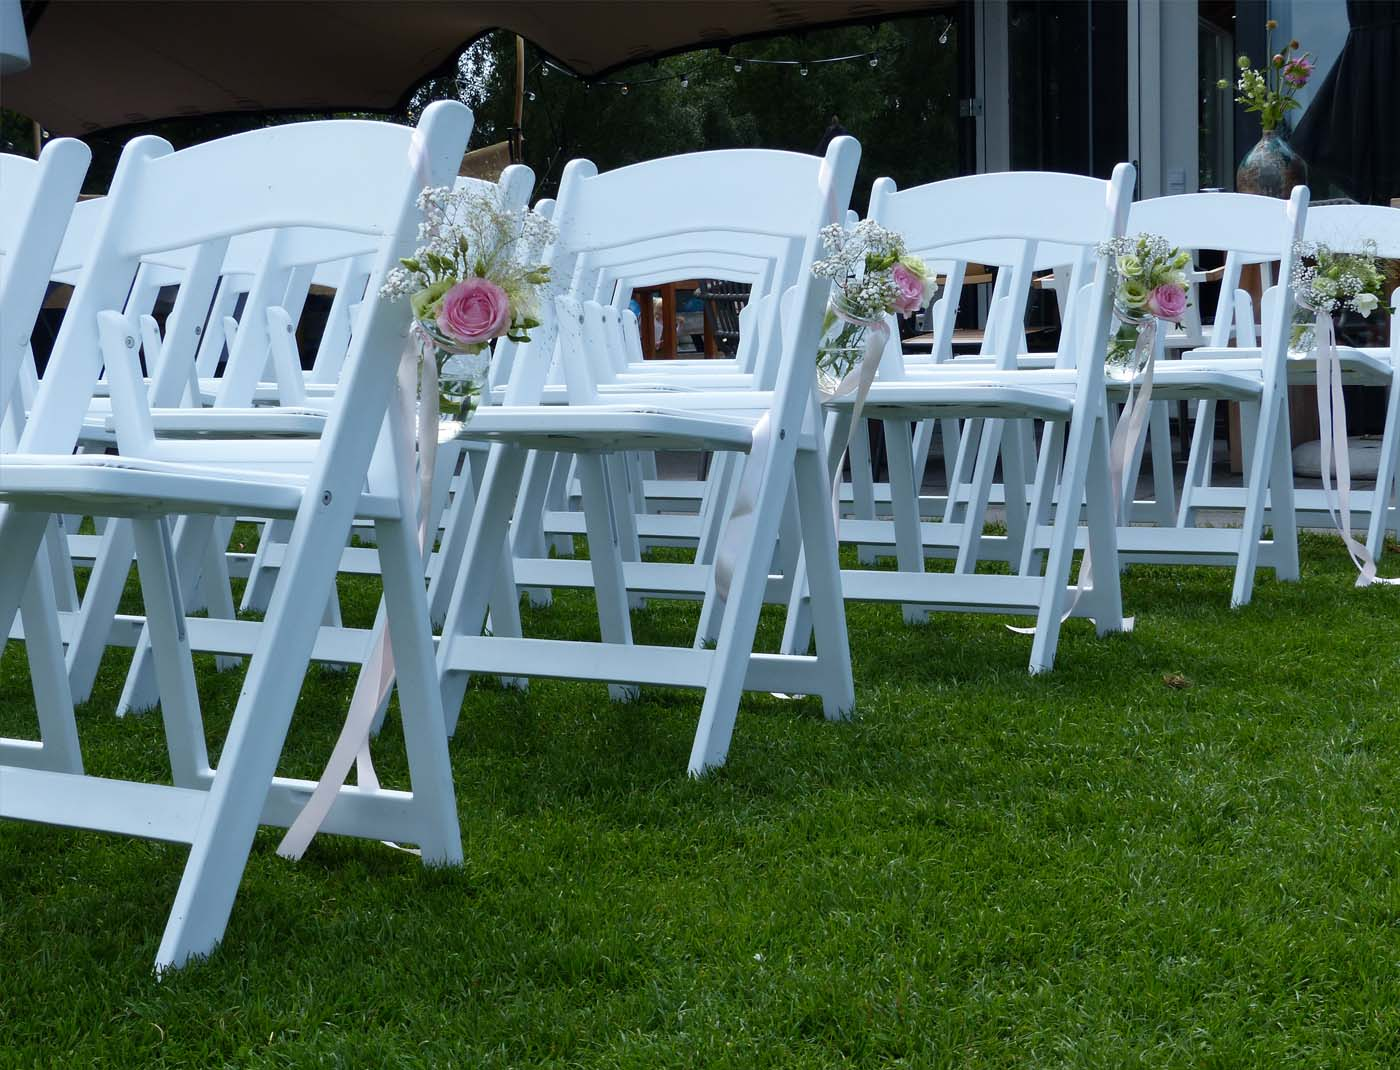 Weddings chairs